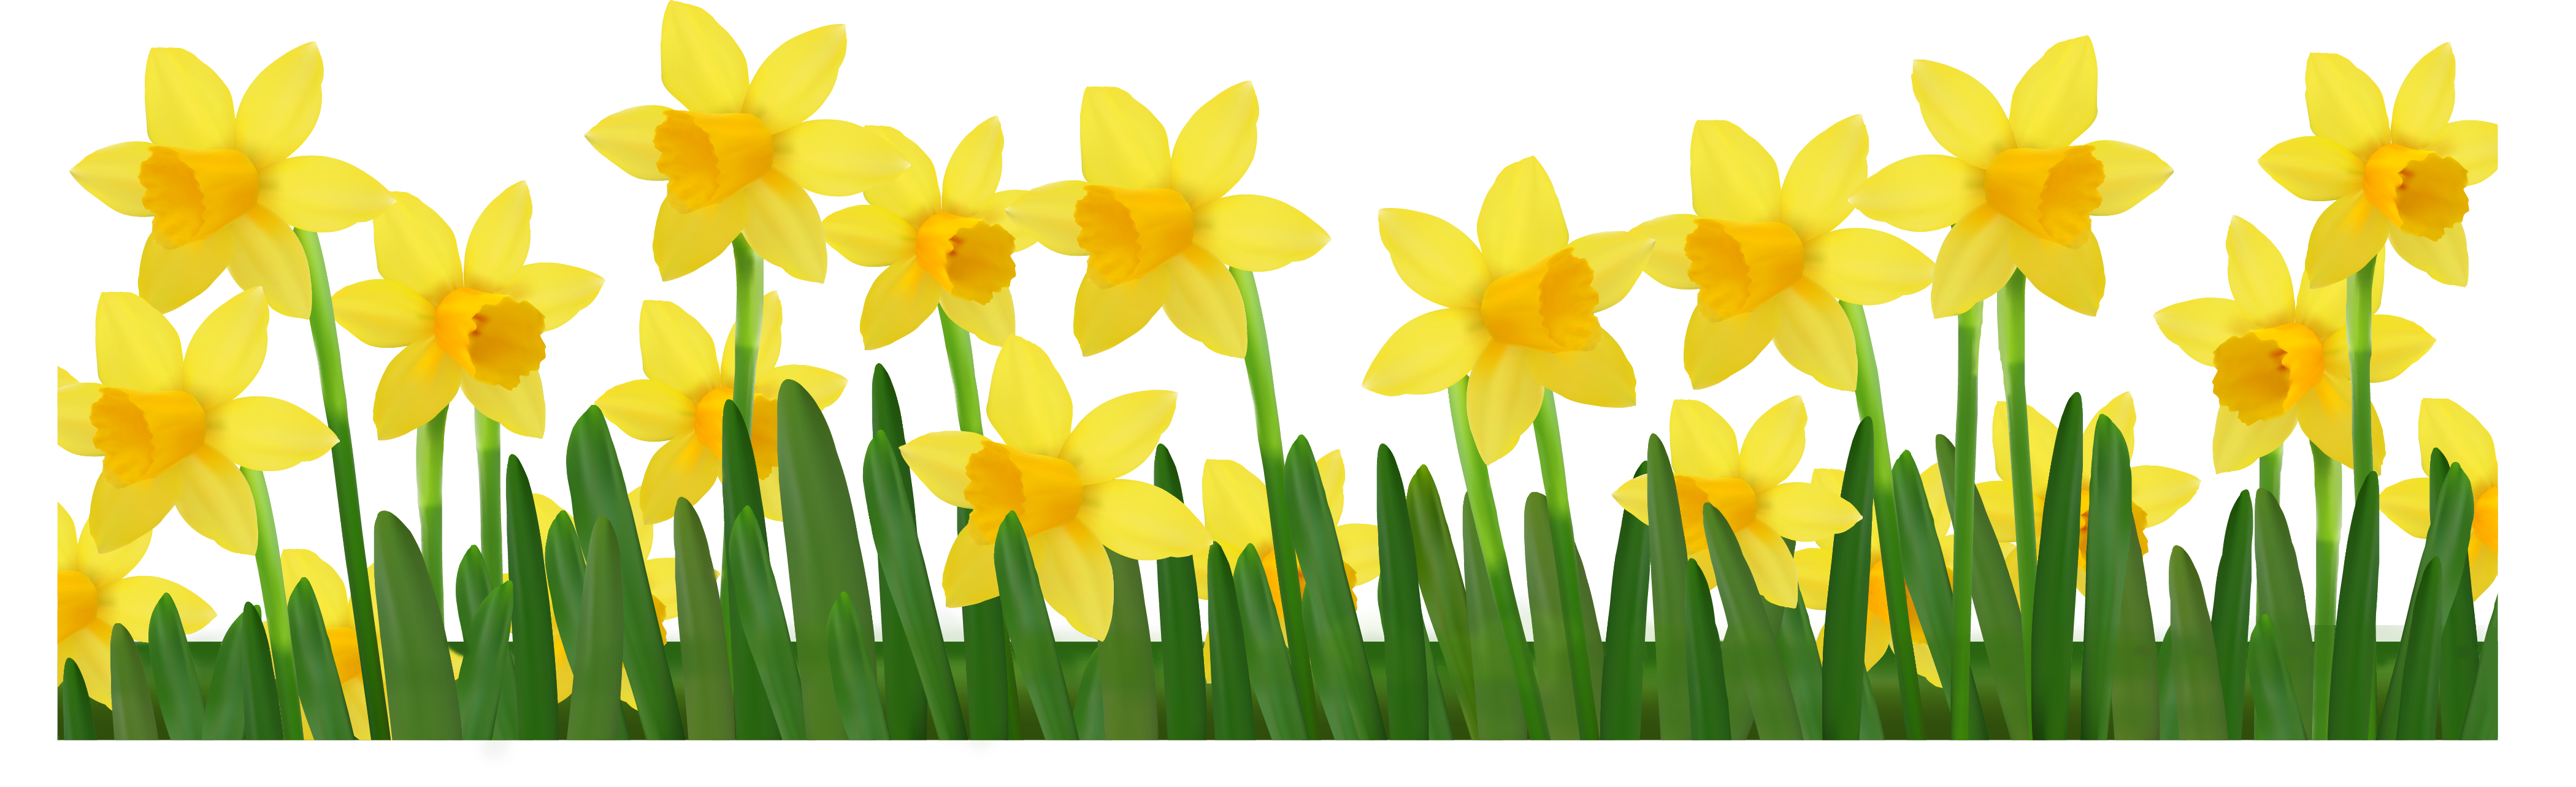 Hill clipart bohol drawing. Grass with daffodils png